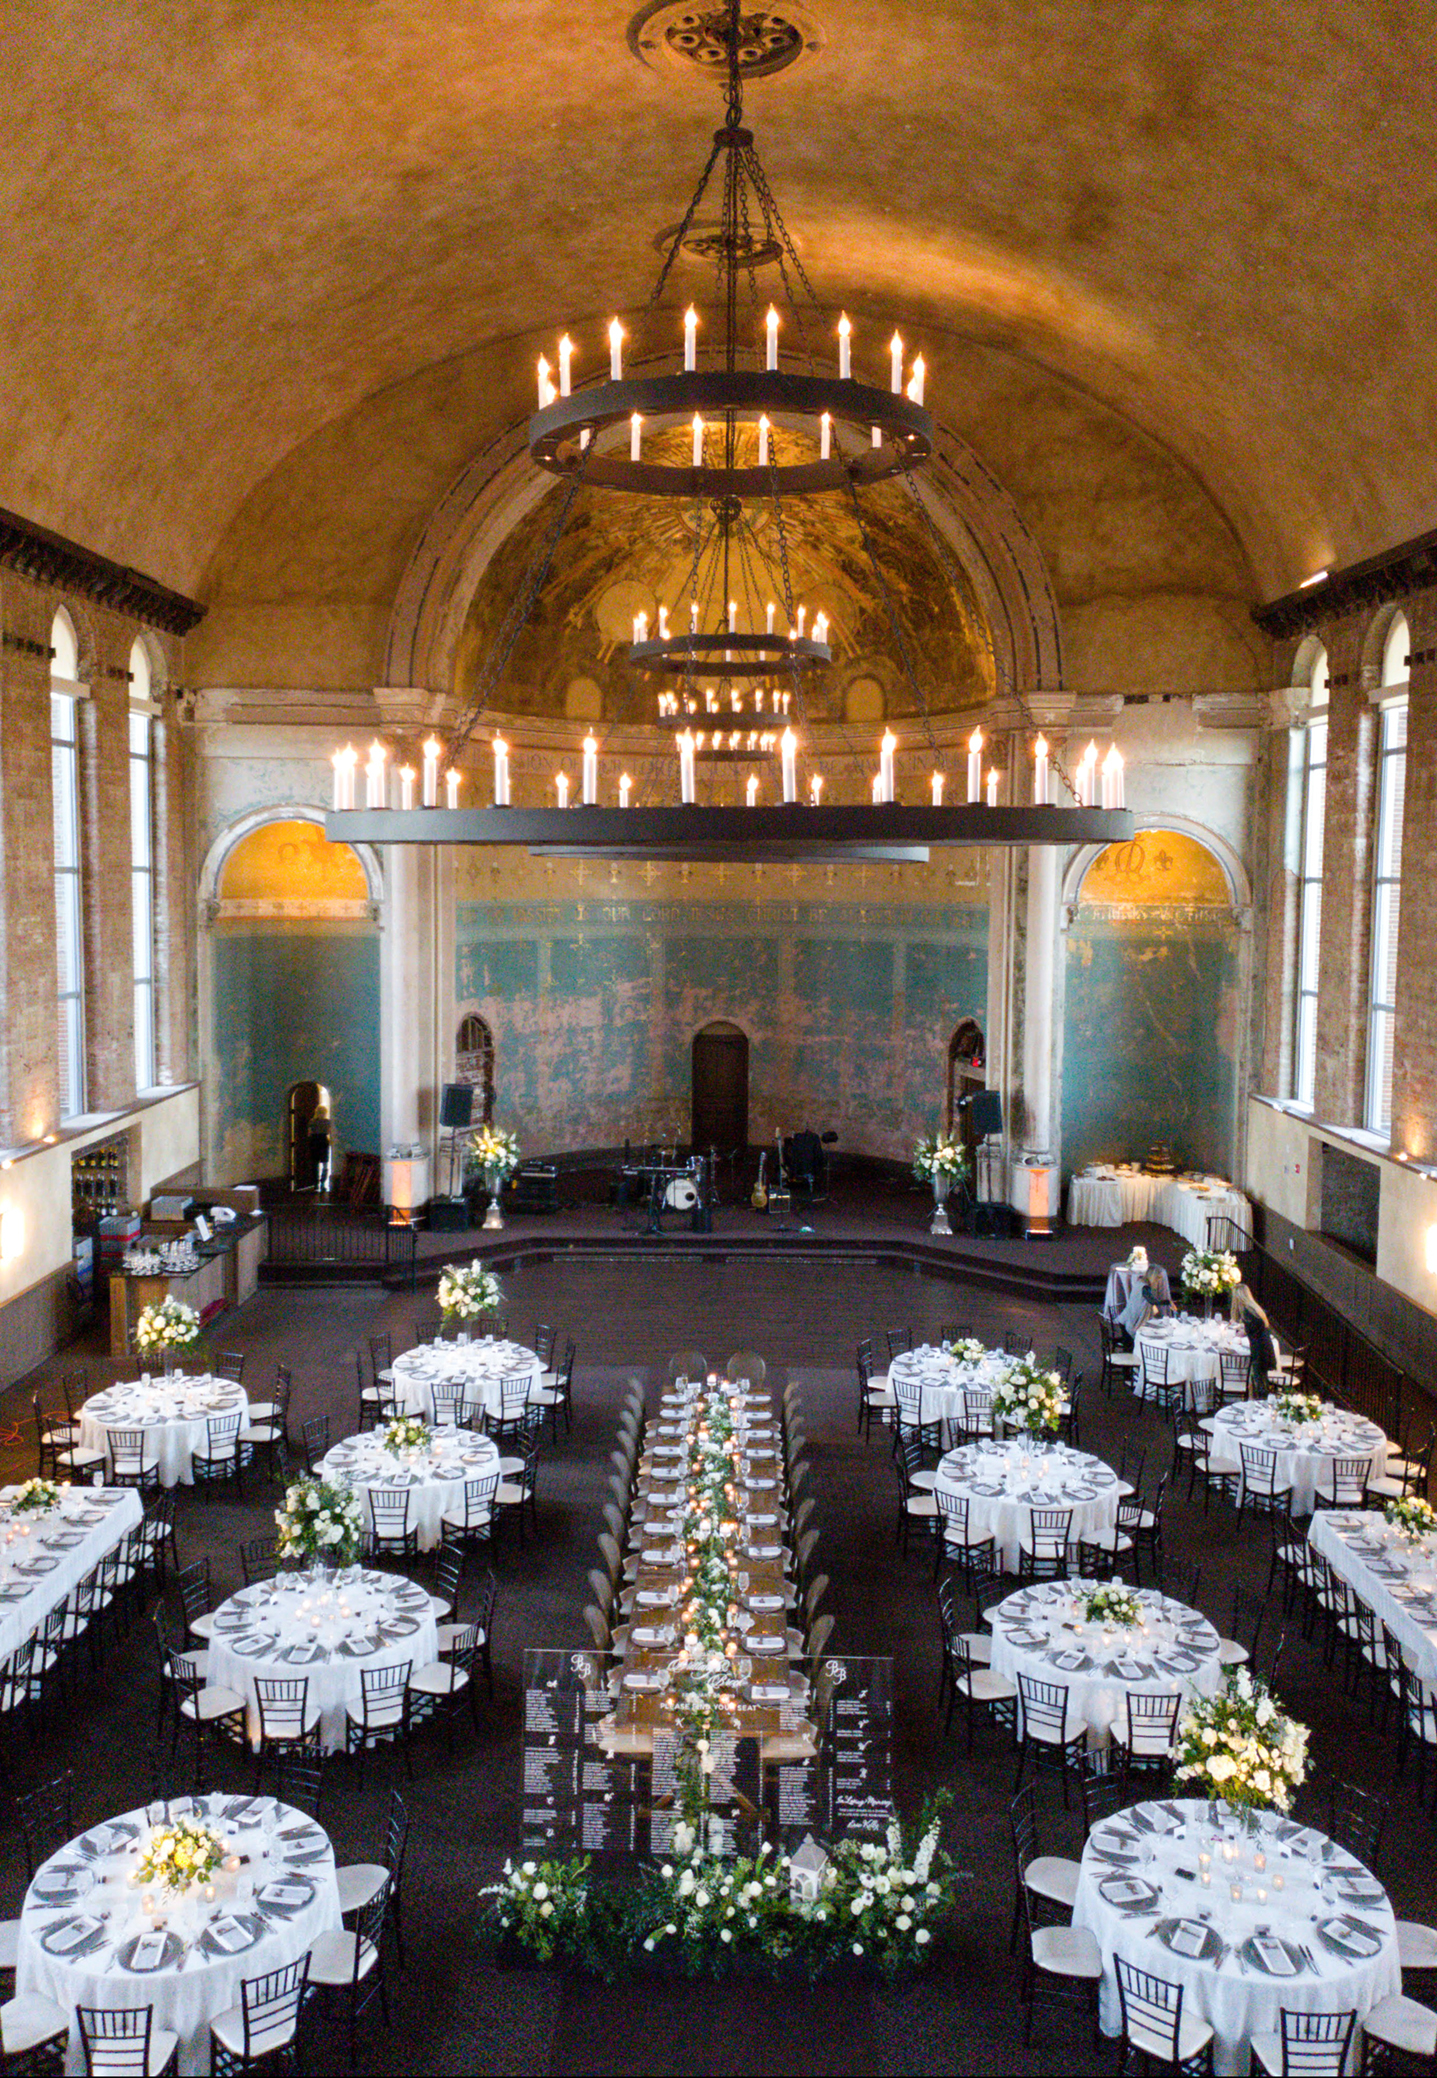 Classic white wedding tables and lush flowers fill the soaring space of The Monastery, a historic Cincinnati wedding venue.